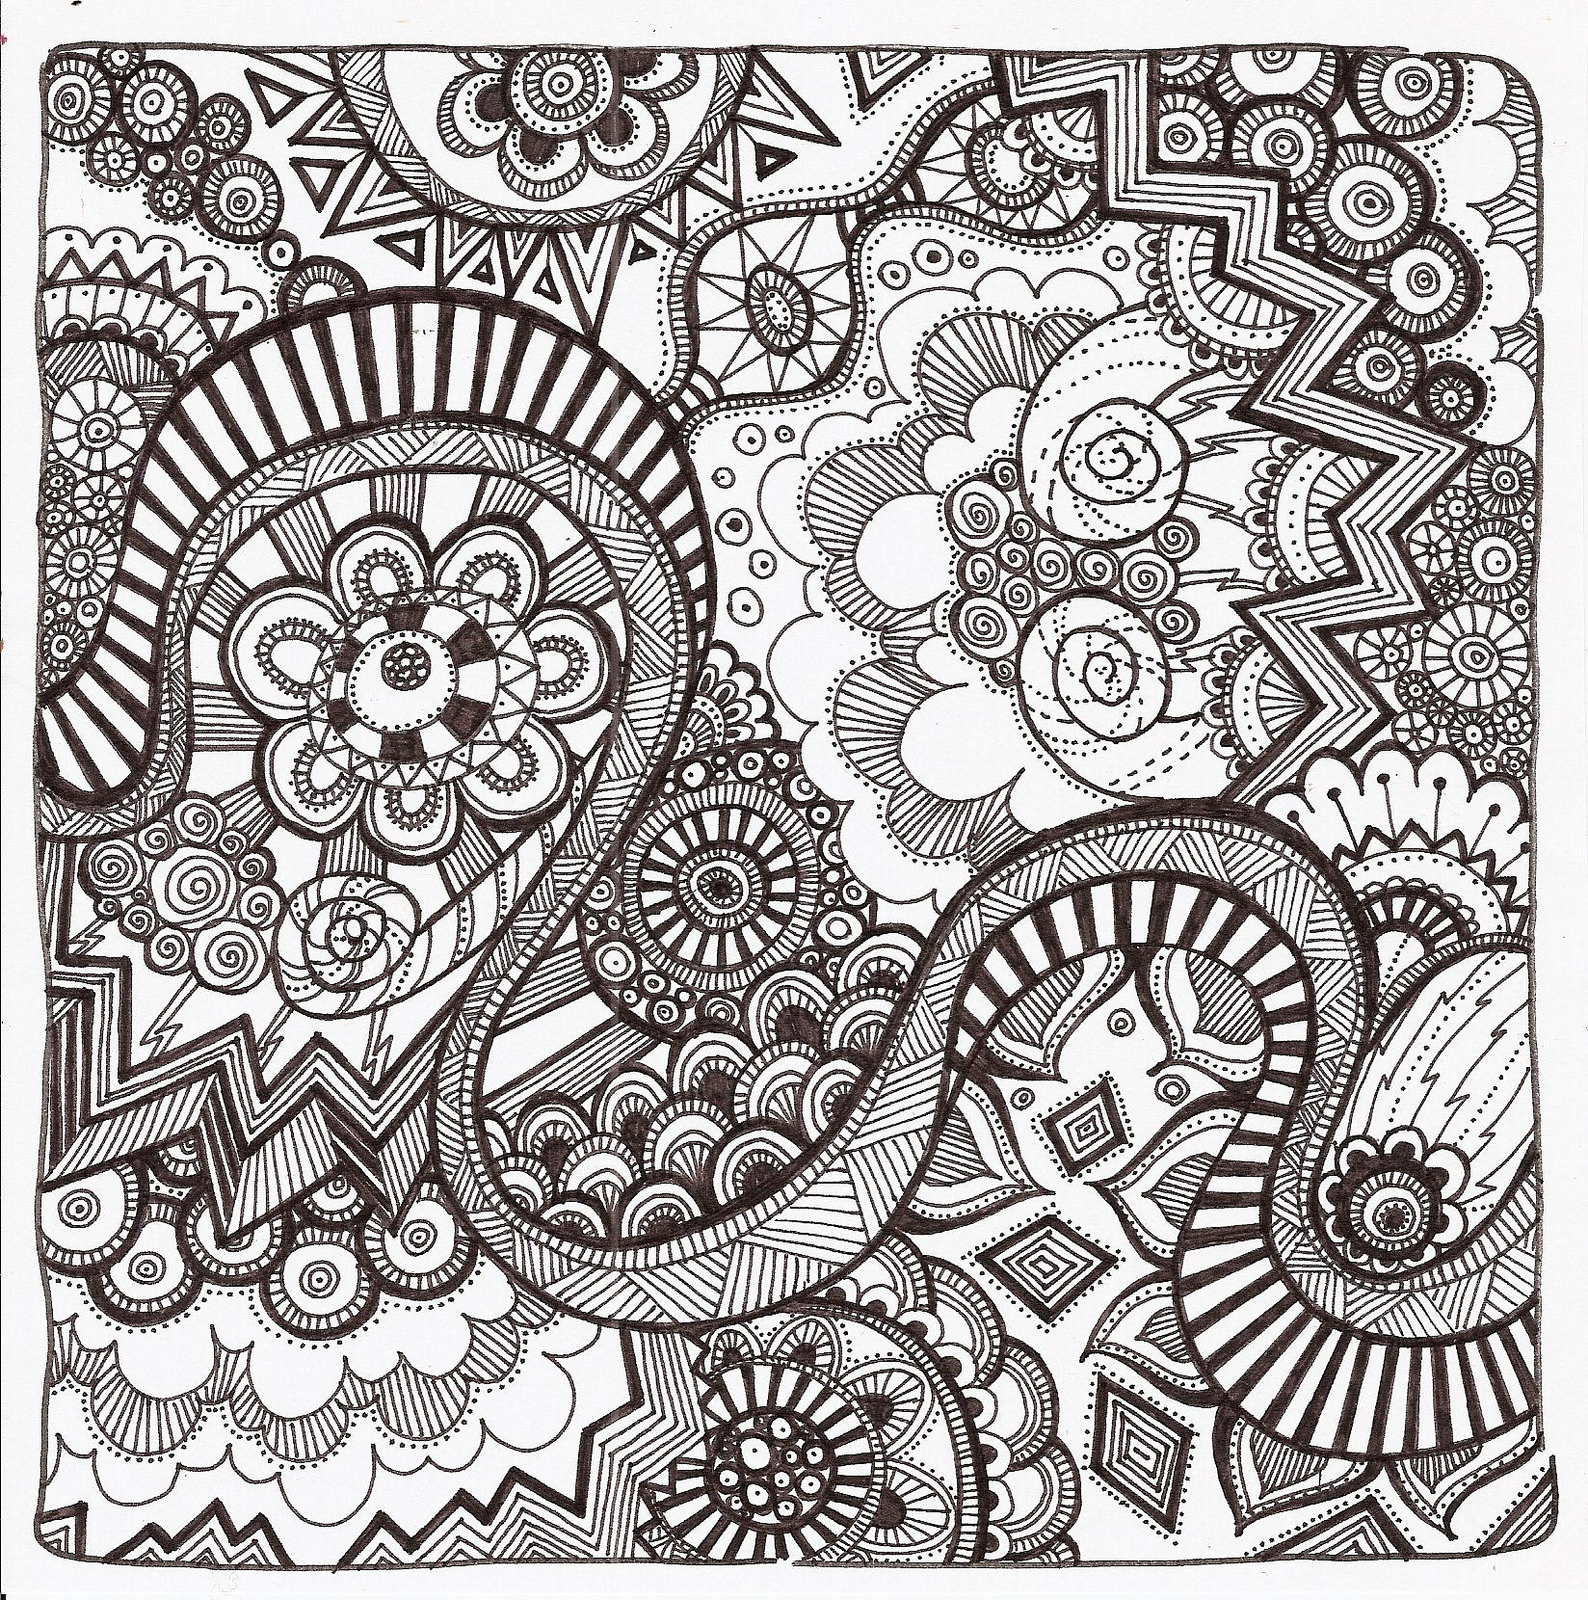 Légend image intended for printable zentangle